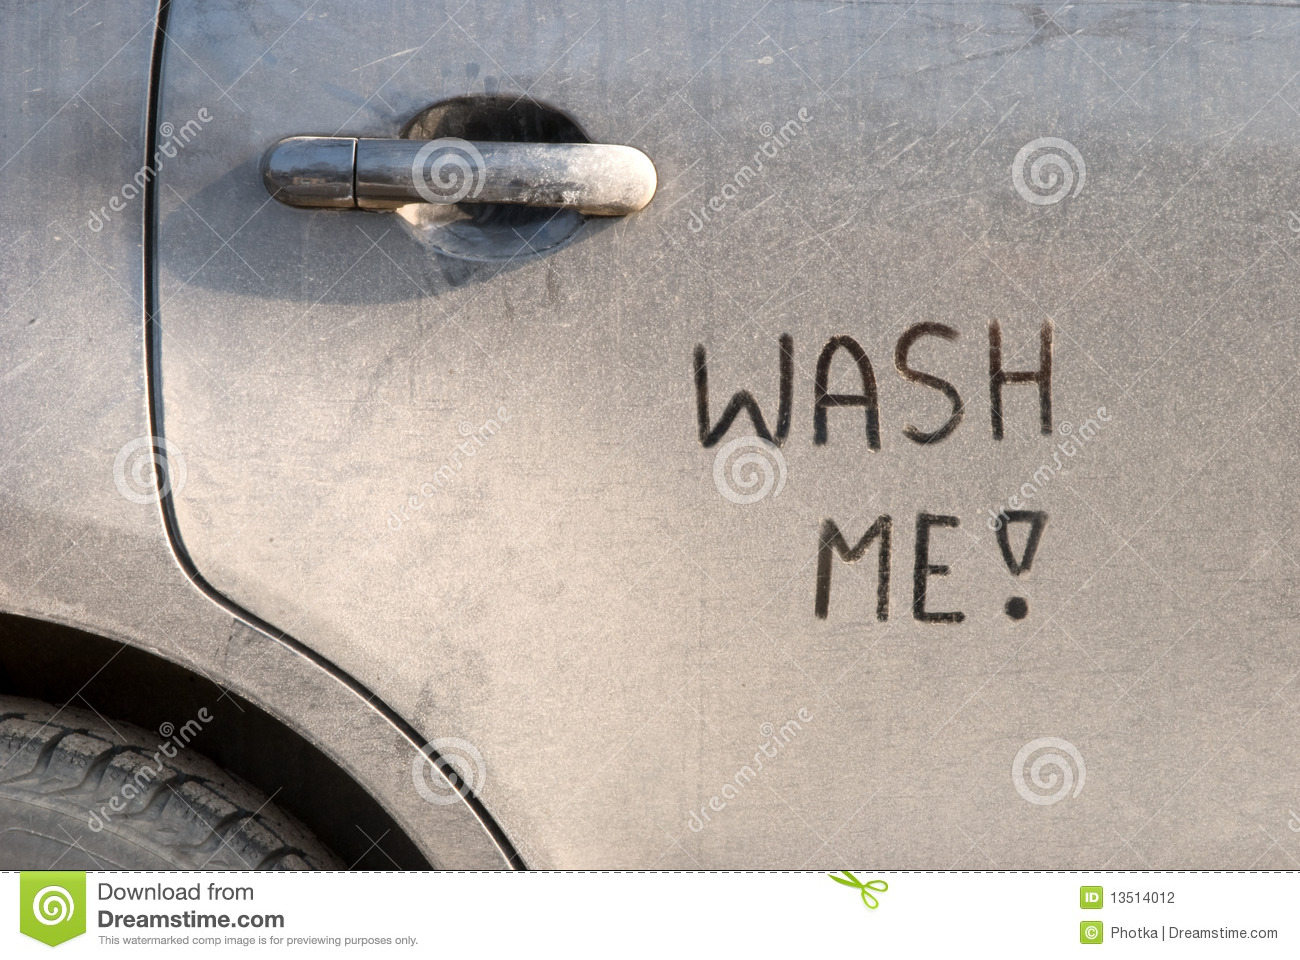 wash me widescreen - photo #19